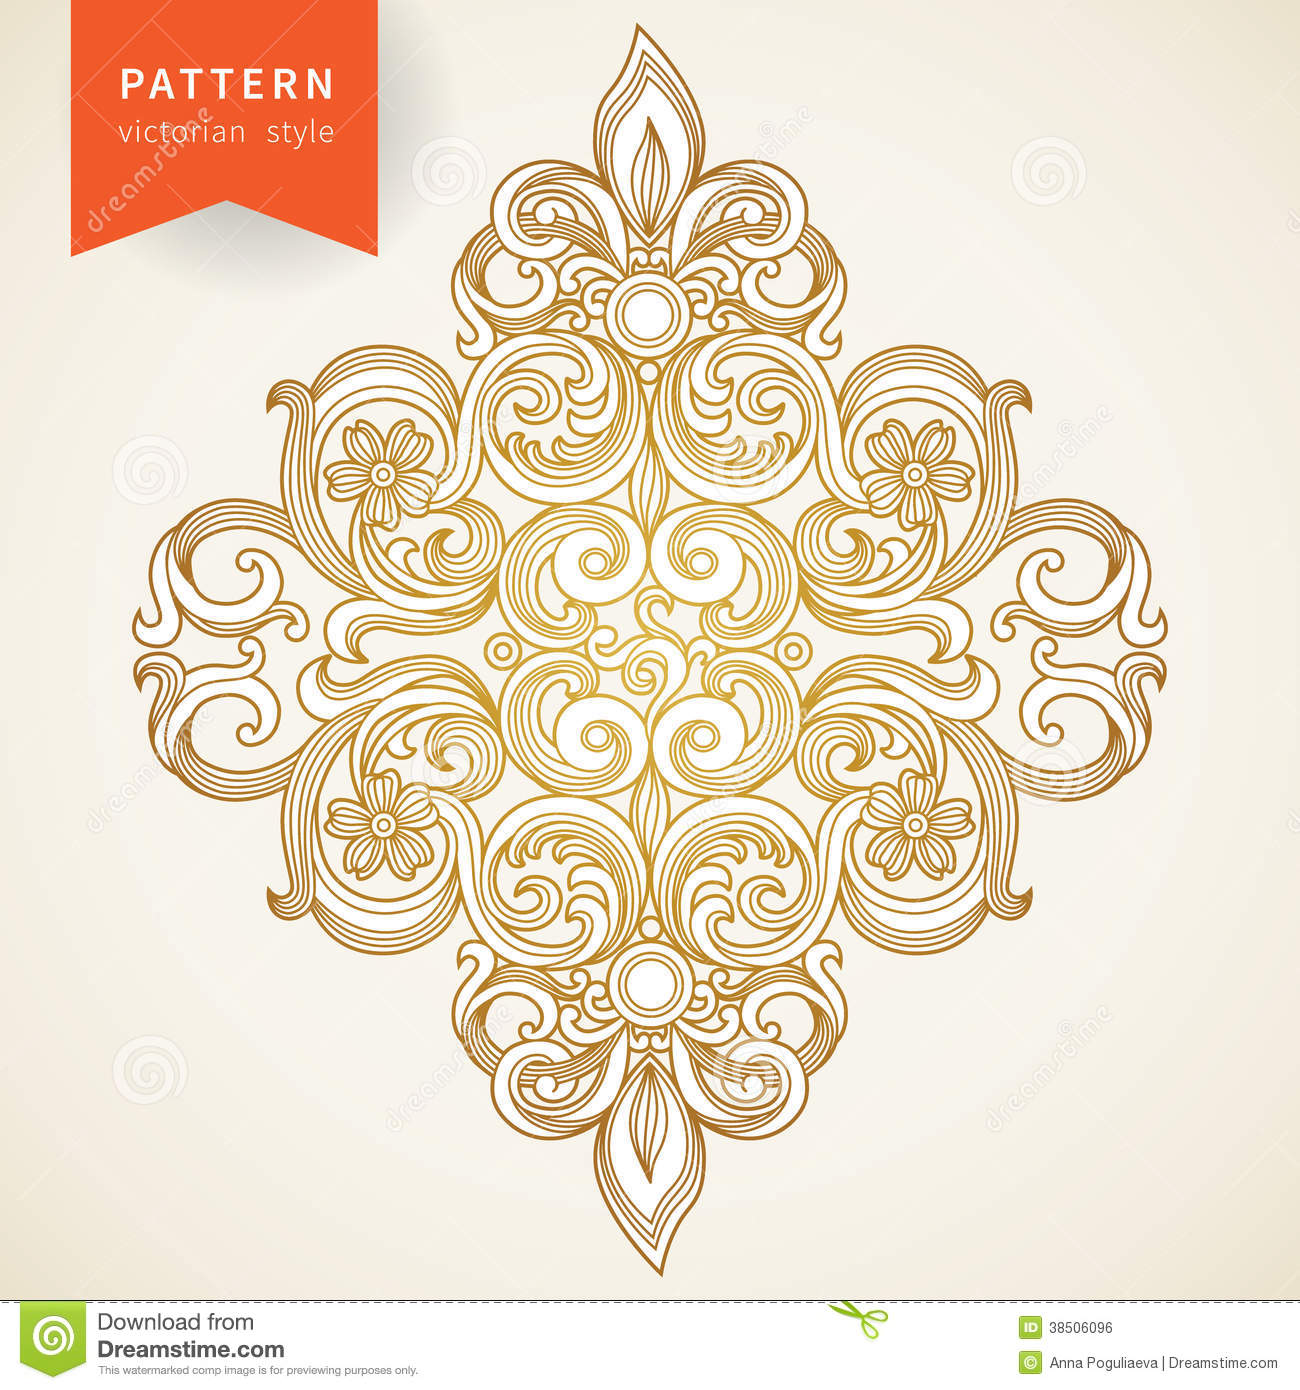 Vector Baroque Ornament In Victorian Style Royalty Free